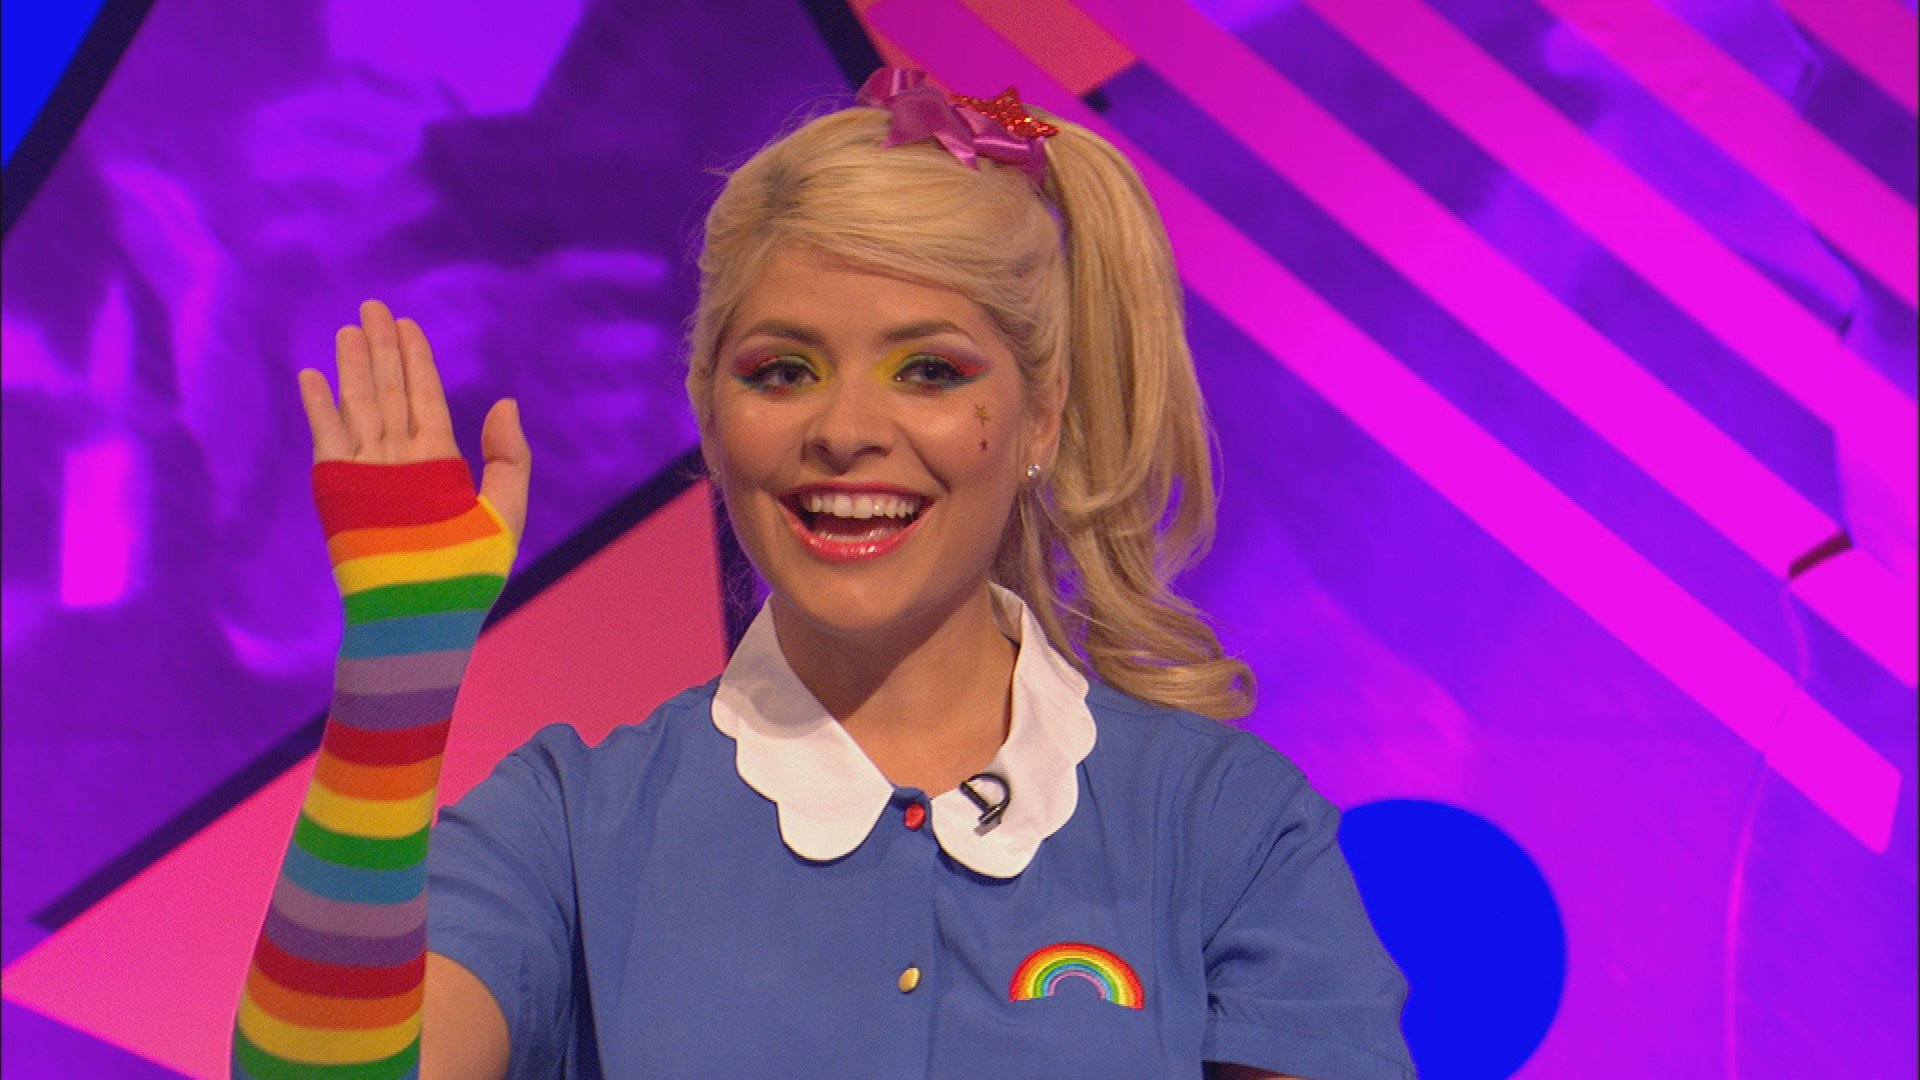 RT @itv2: A big, bright, 80s rainbow. Here's @HollyWills getting into the @CelebJuice 80s special, tonight 10pm @itv2  #80sDay https://t.co…